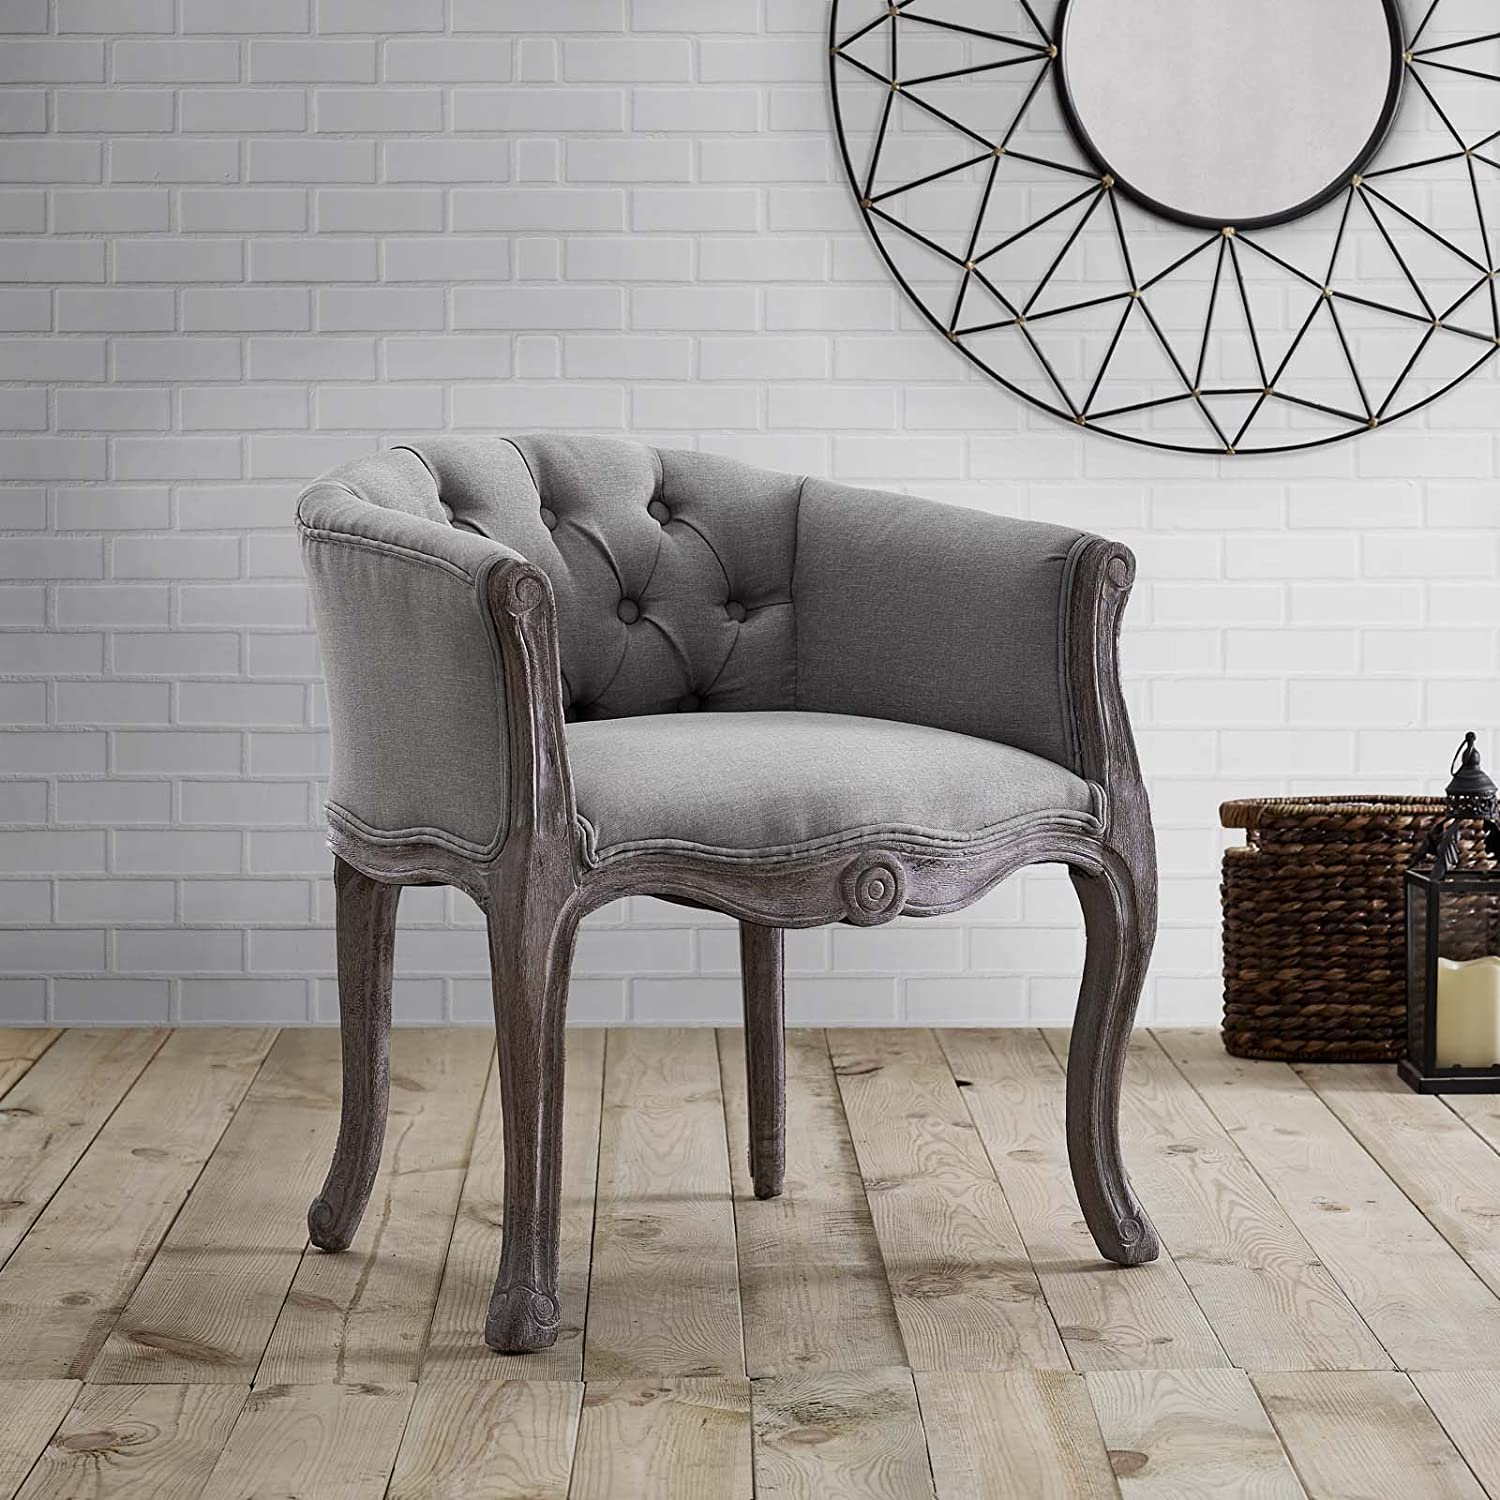 Modway Crown French Vintage Barrel Back Tufted Upholstered Fabric Kitchen and Dining Room Arm Chair in Light Gray – Fully Assembled